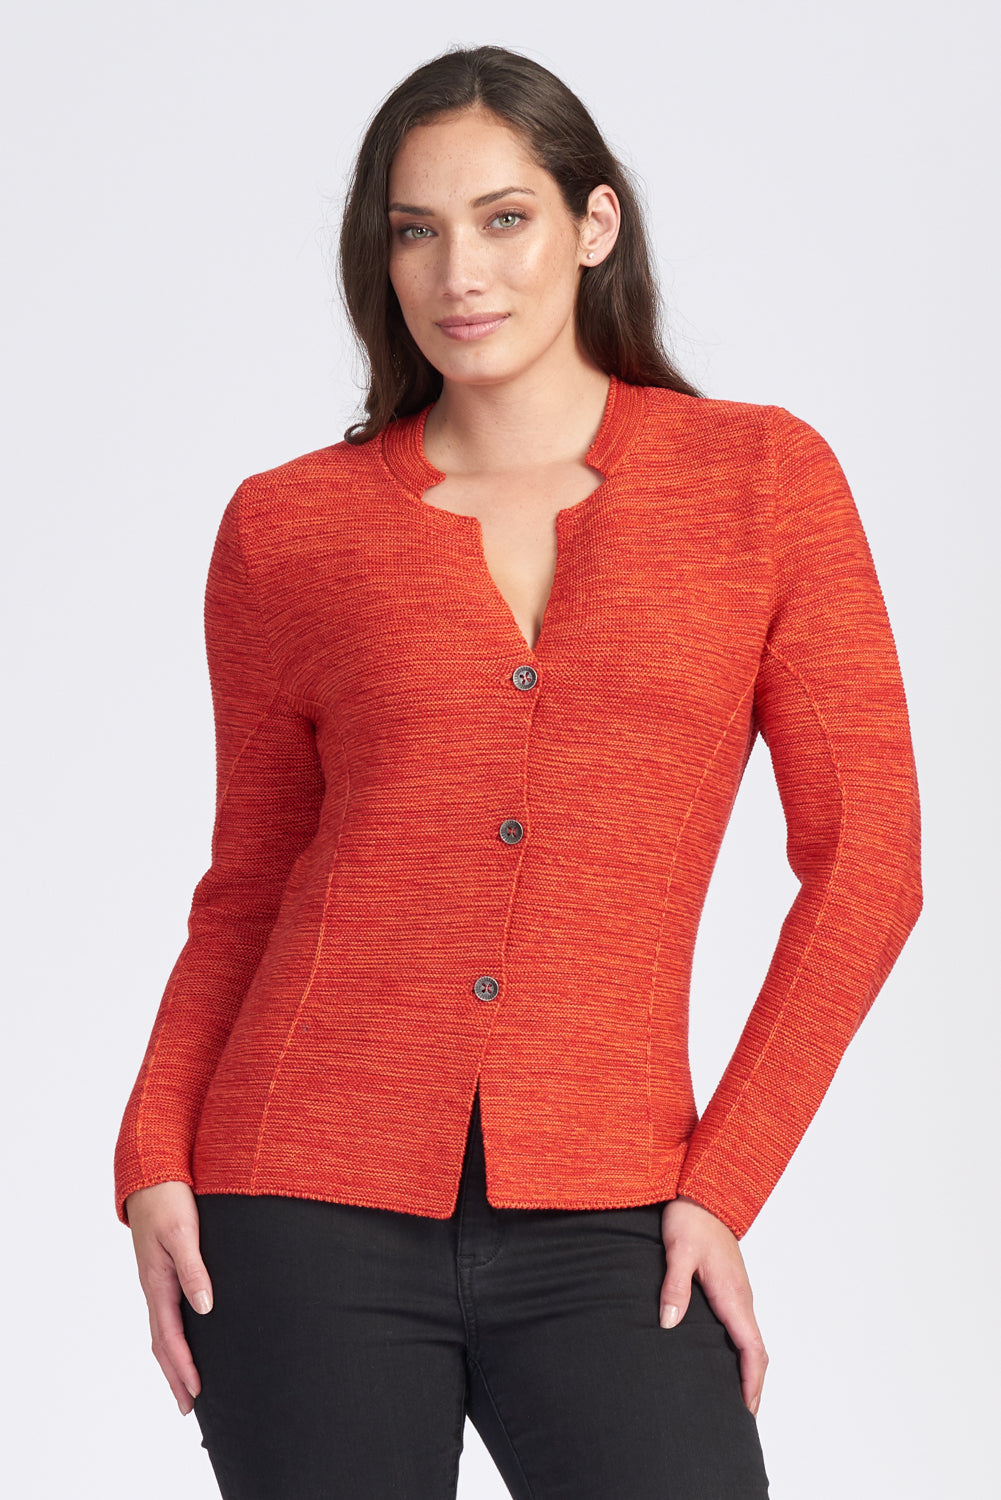 Ladies button front jacket in Marle knit.